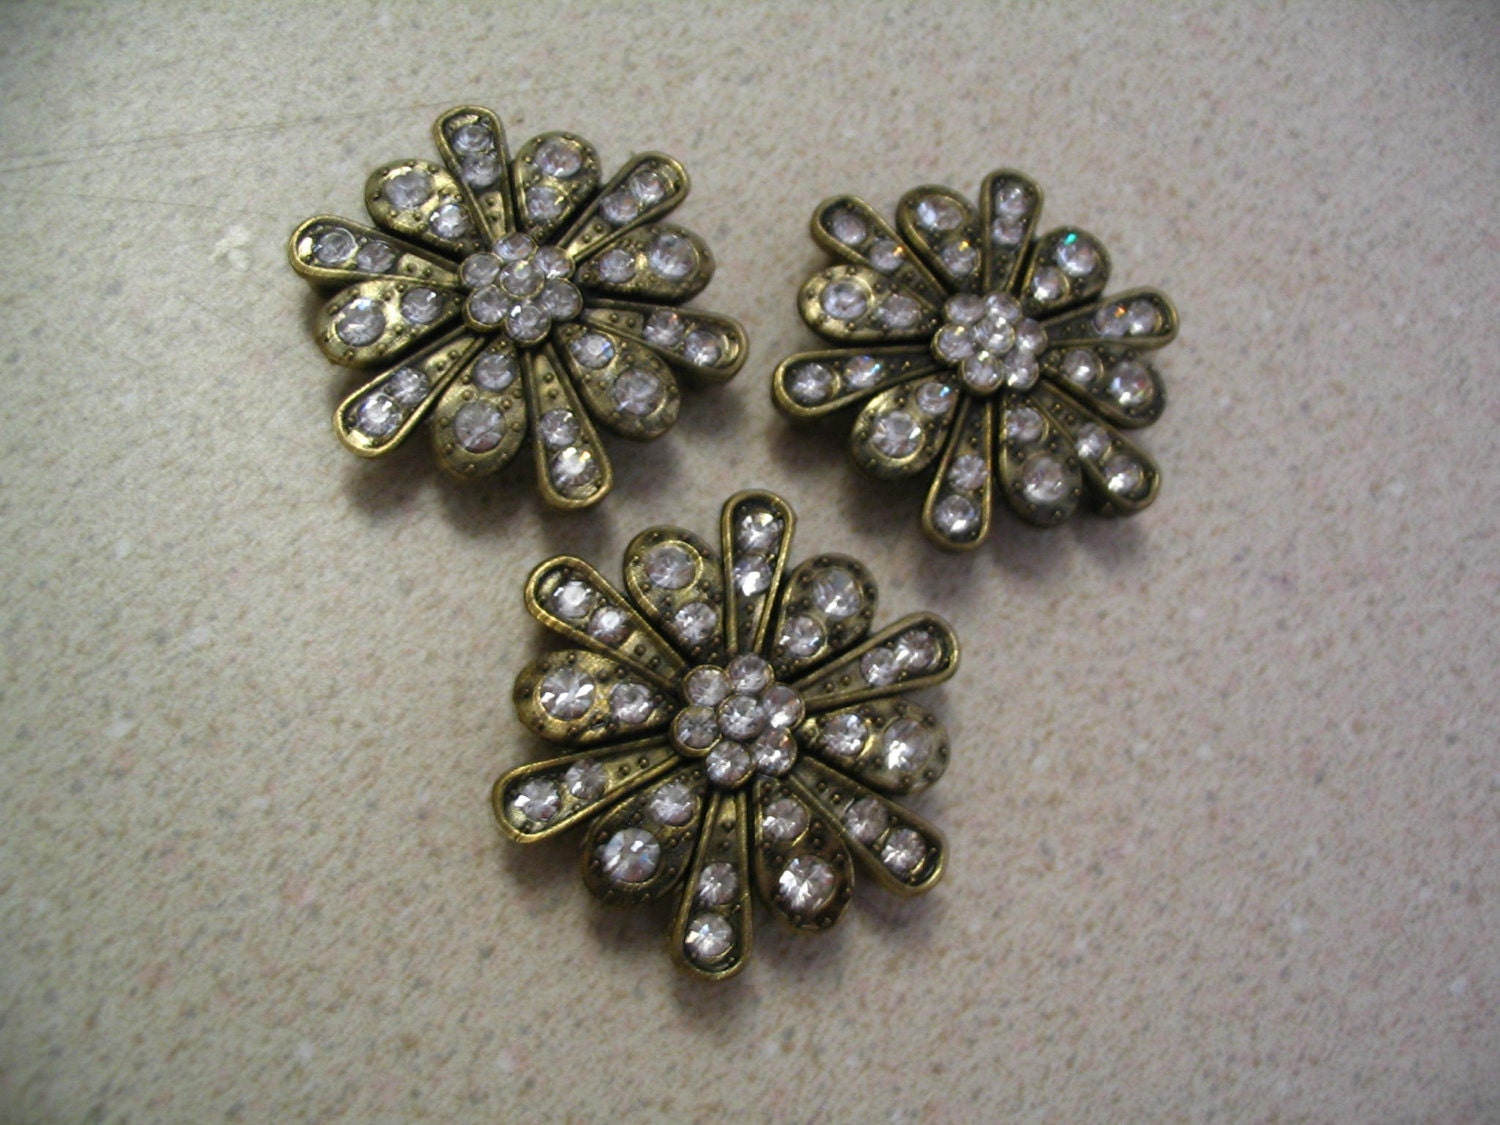 3 large rhinestone metal bead connectors by accentcreations